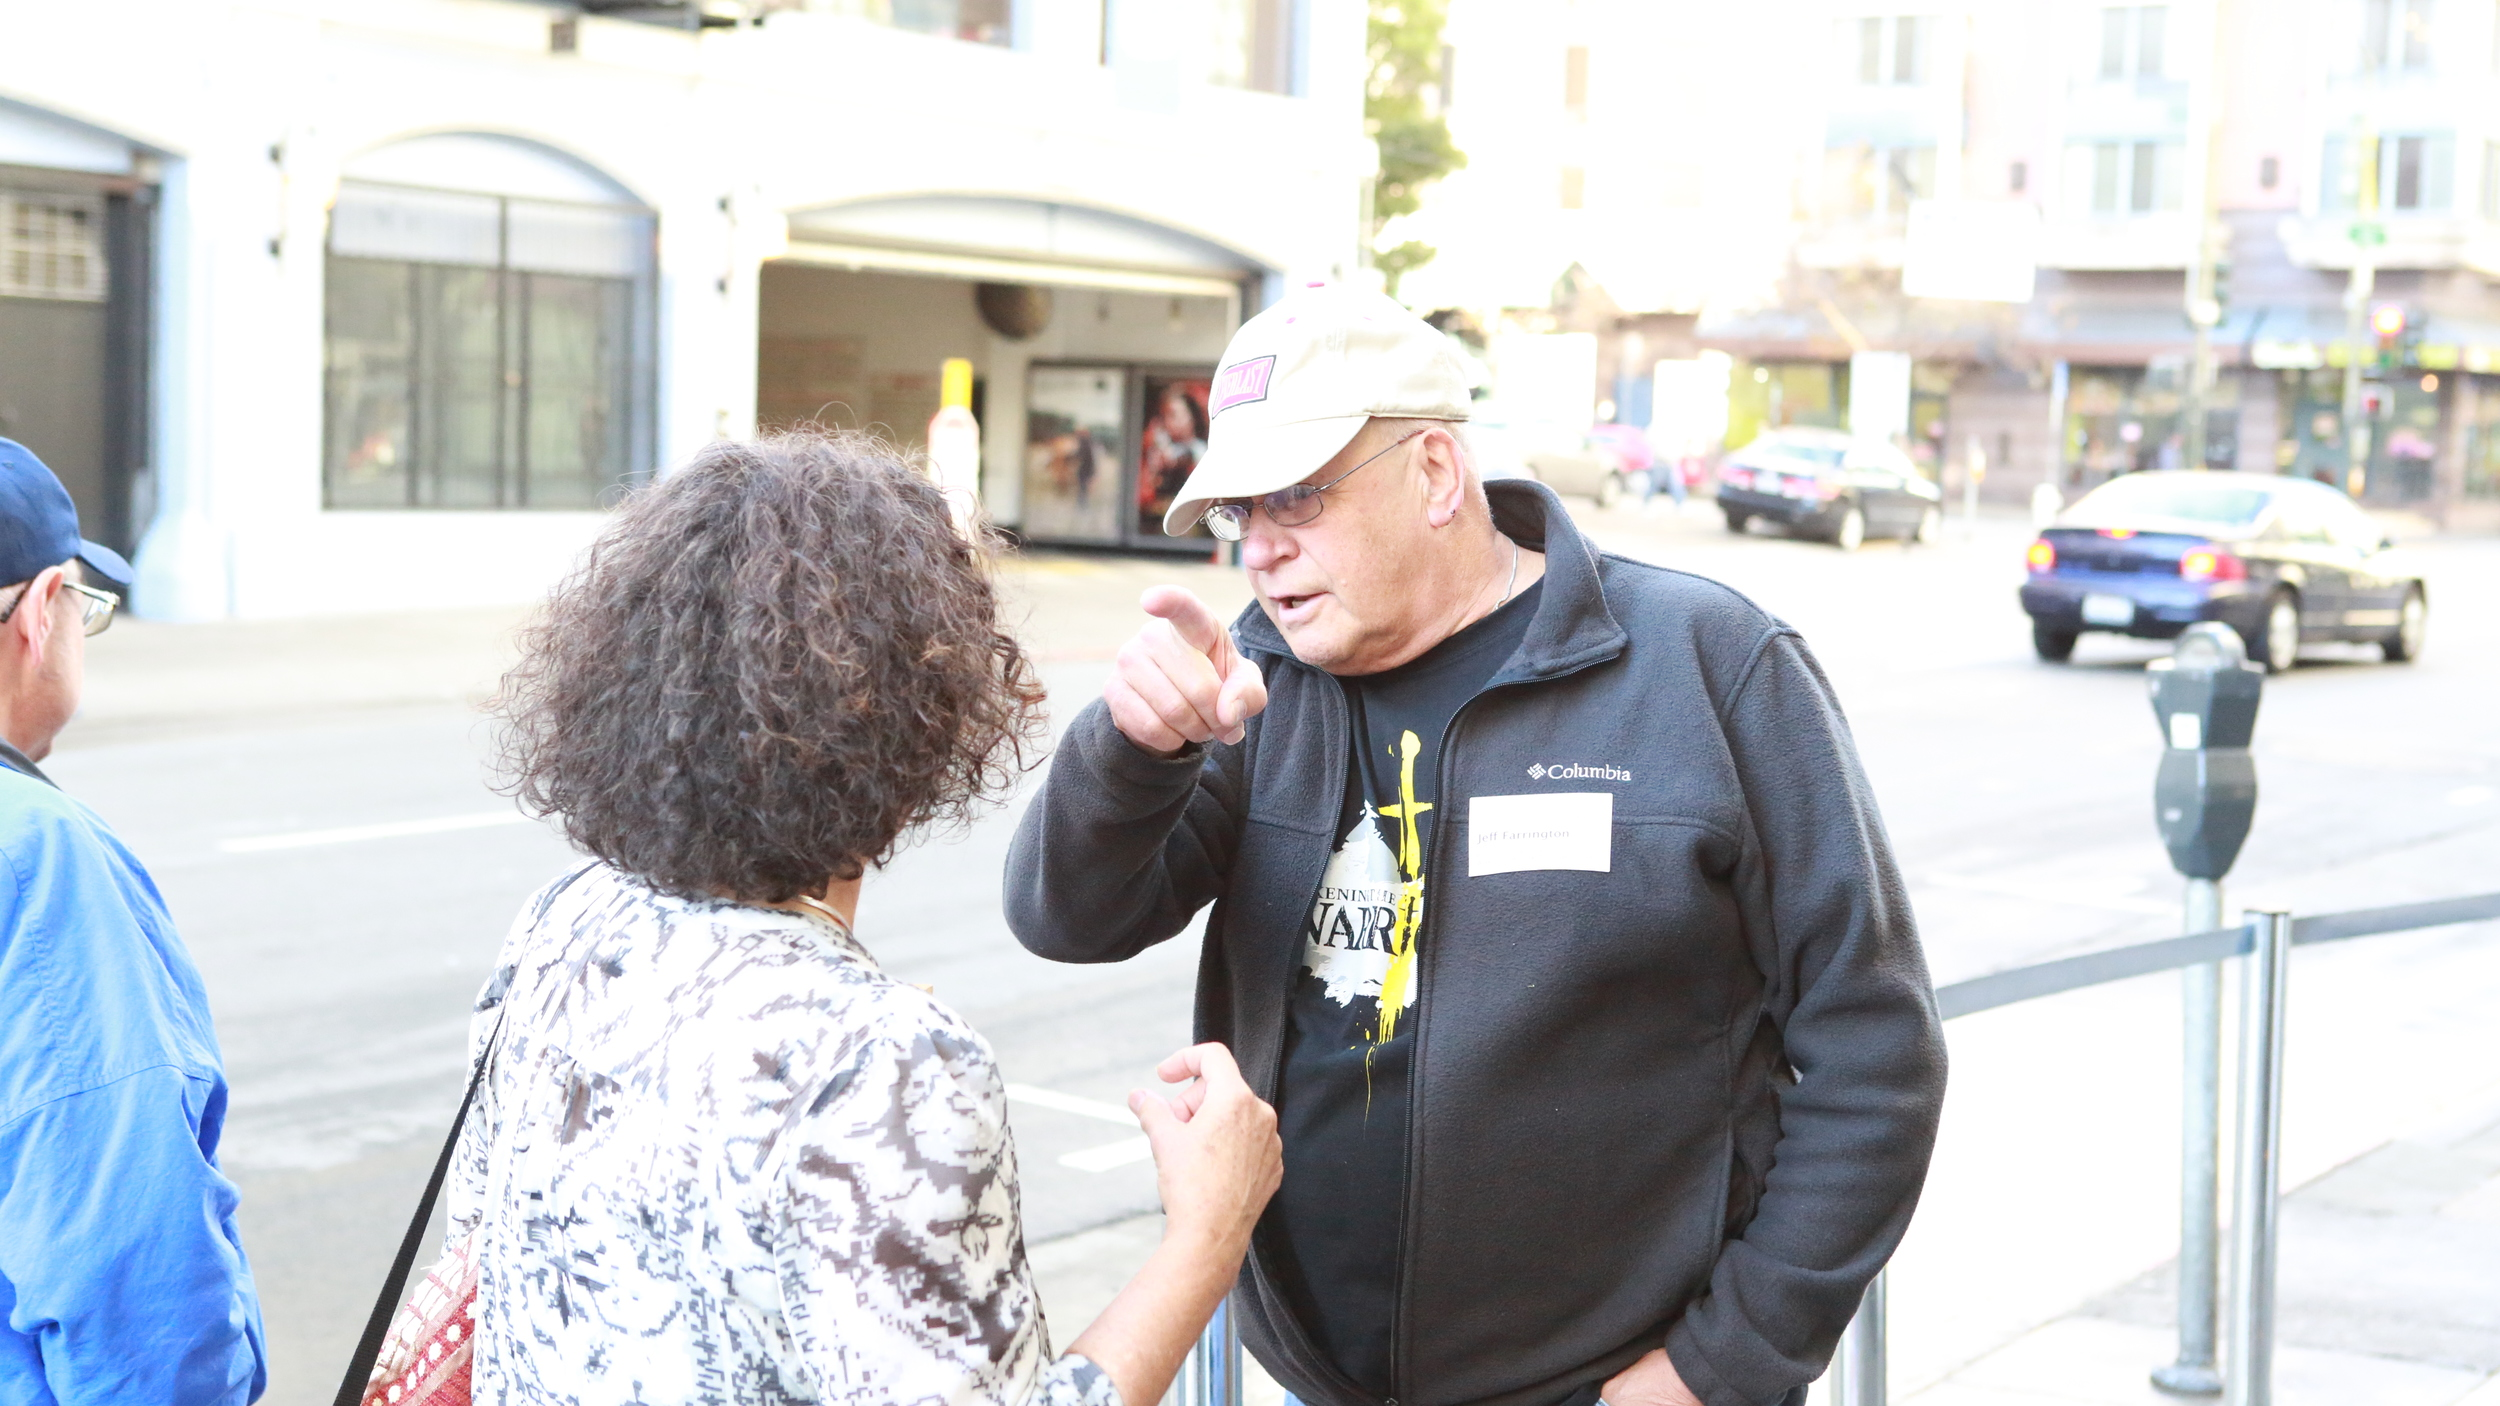 Mr. Jeff Farrington leveraging his life for the welfare of the Tenderloin.